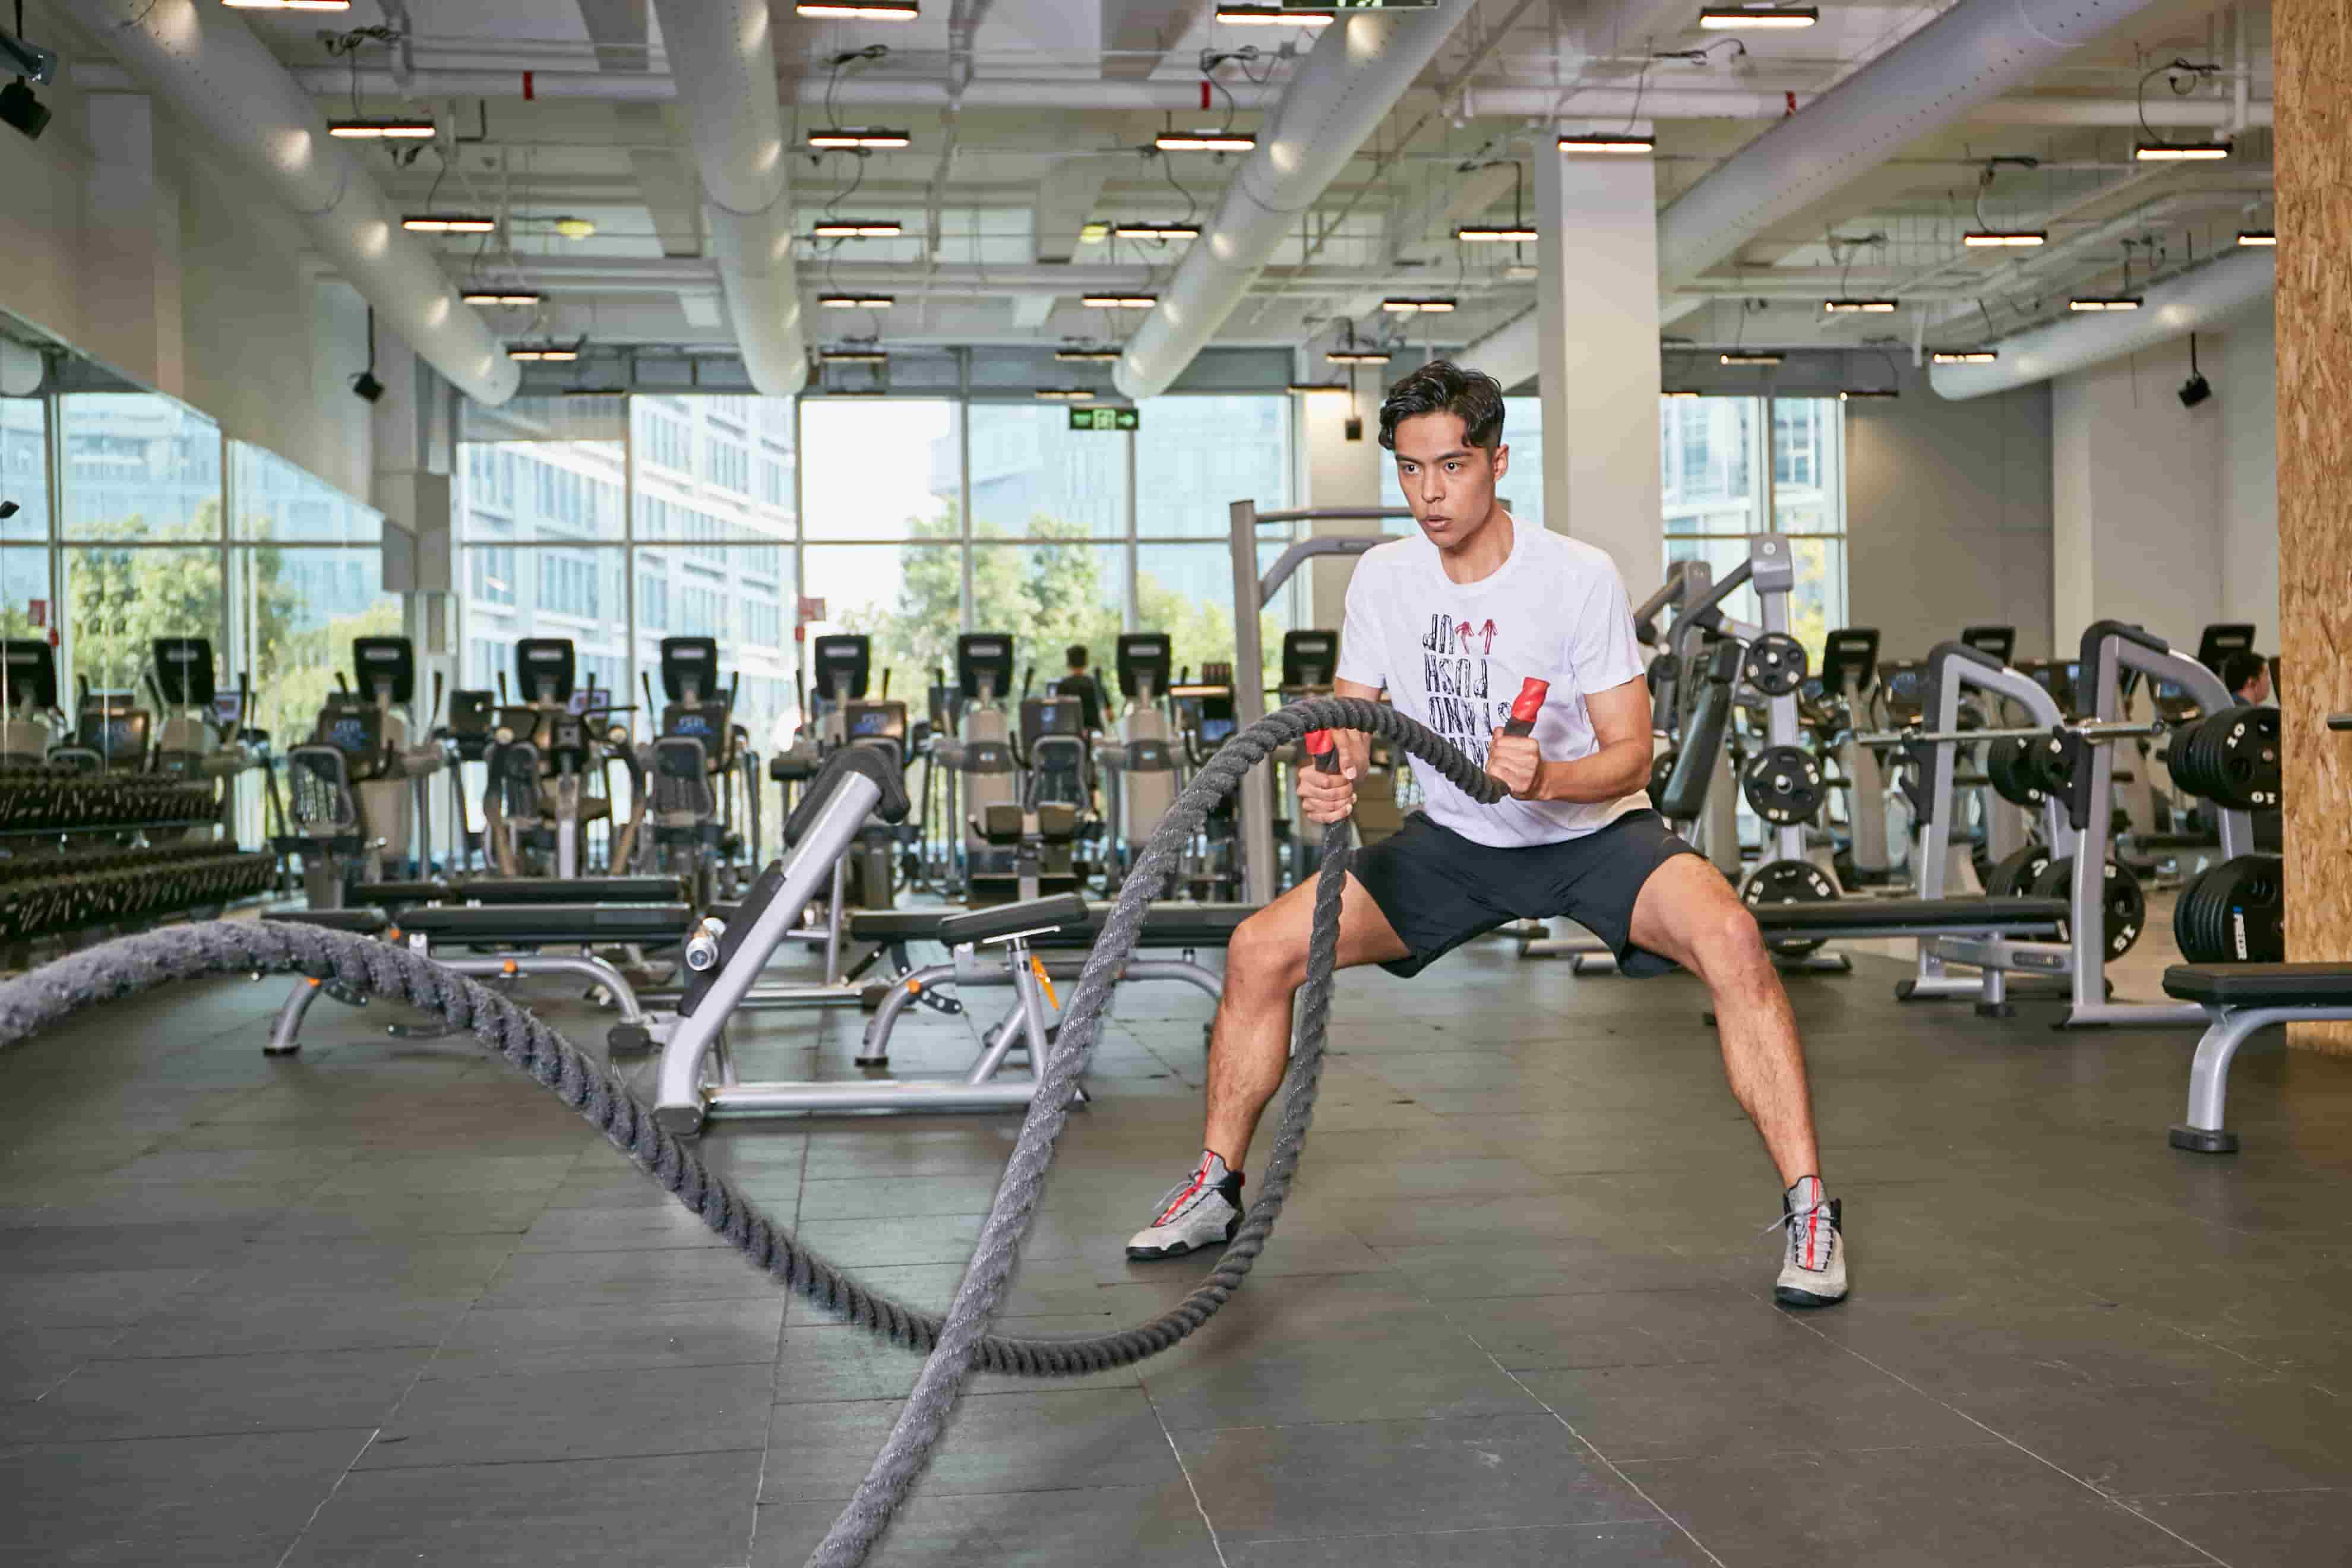 Top 5 Components For Physical Fitness